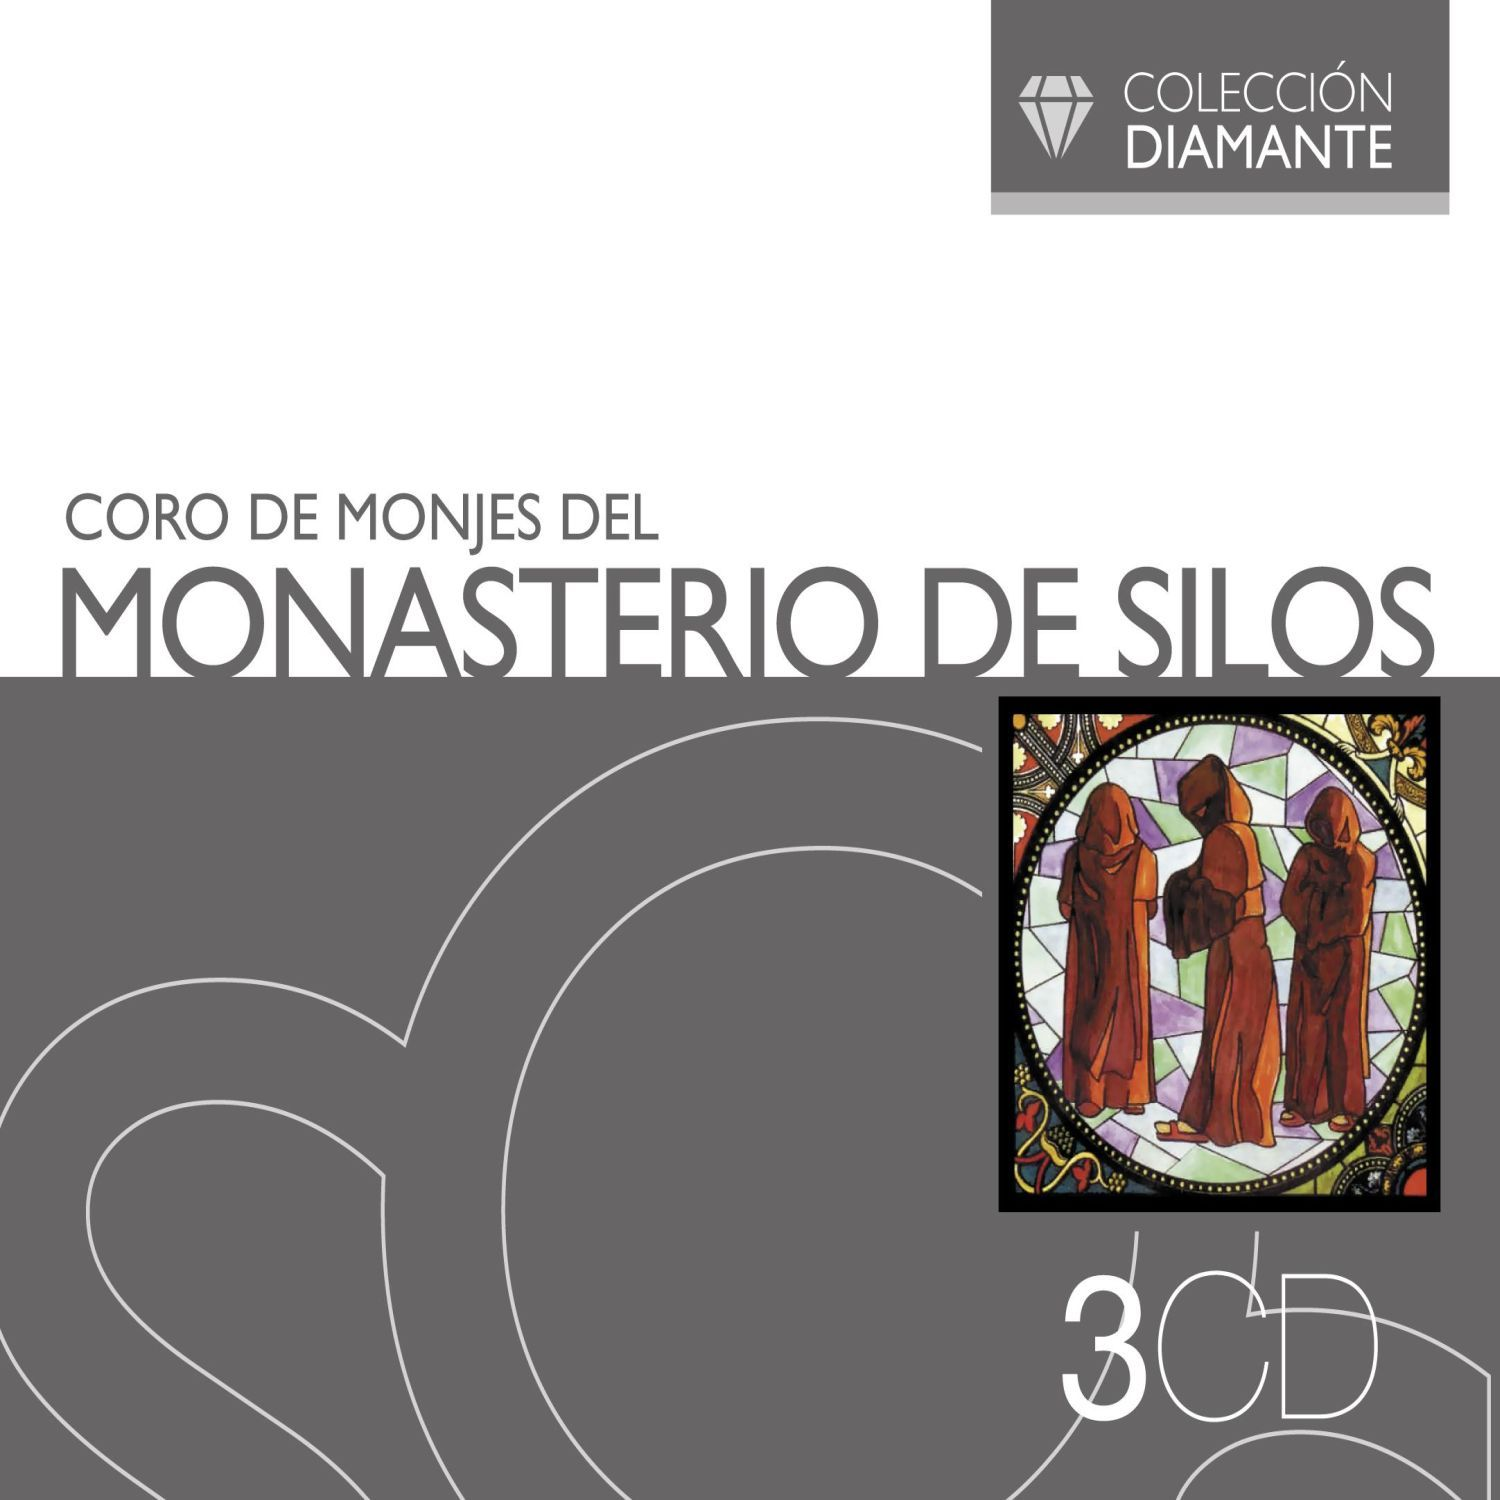 Kyrie Fons Bonitatis - Tropo (Modo III) (1999 Remastered Version)